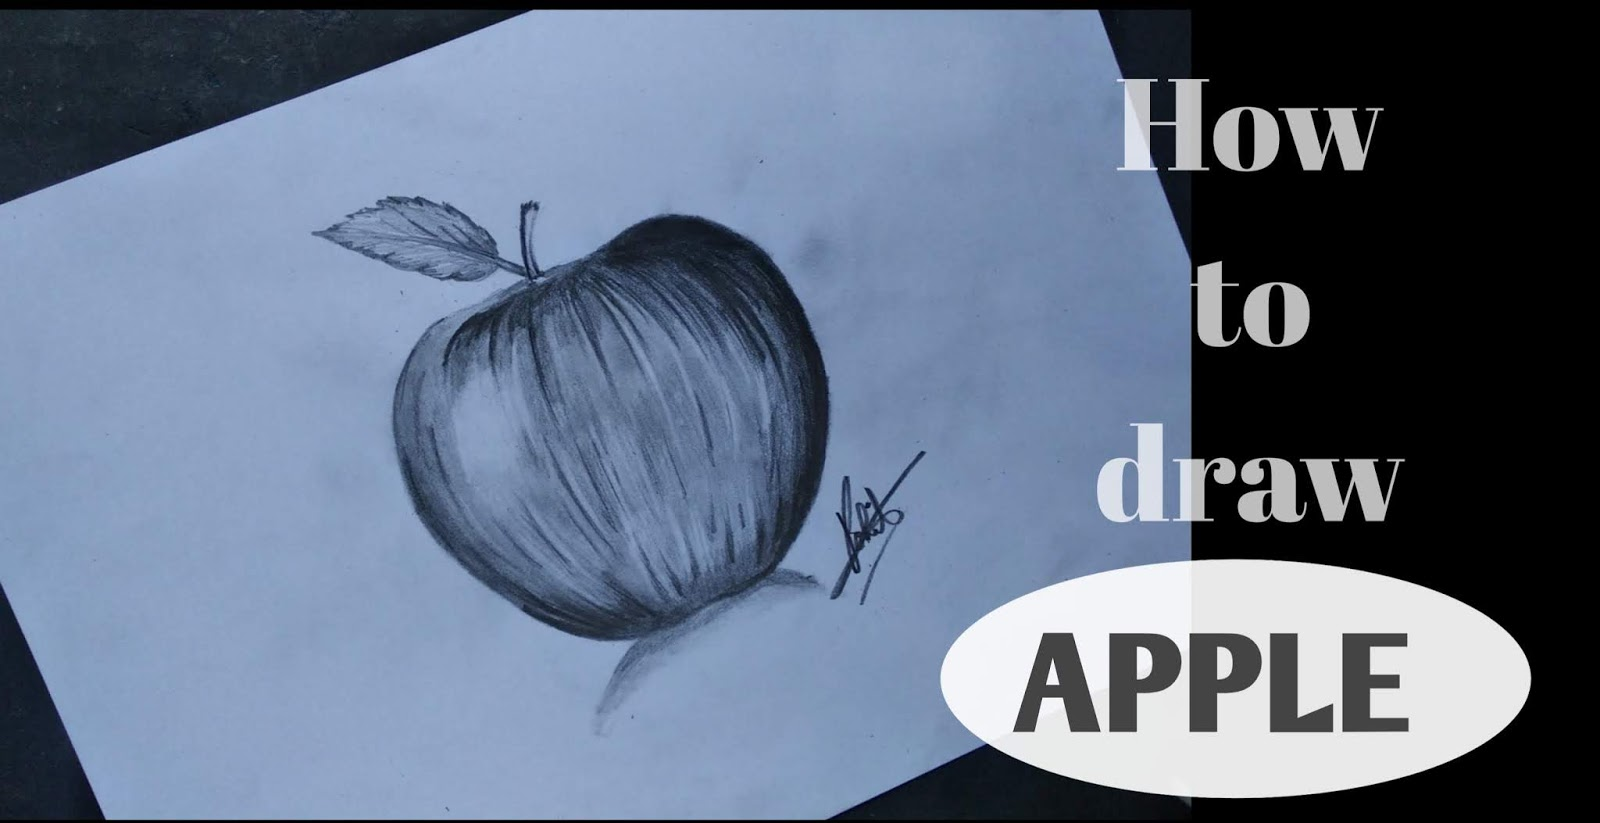 How to draw apple how to draw apple with pencil apple realistic drawing